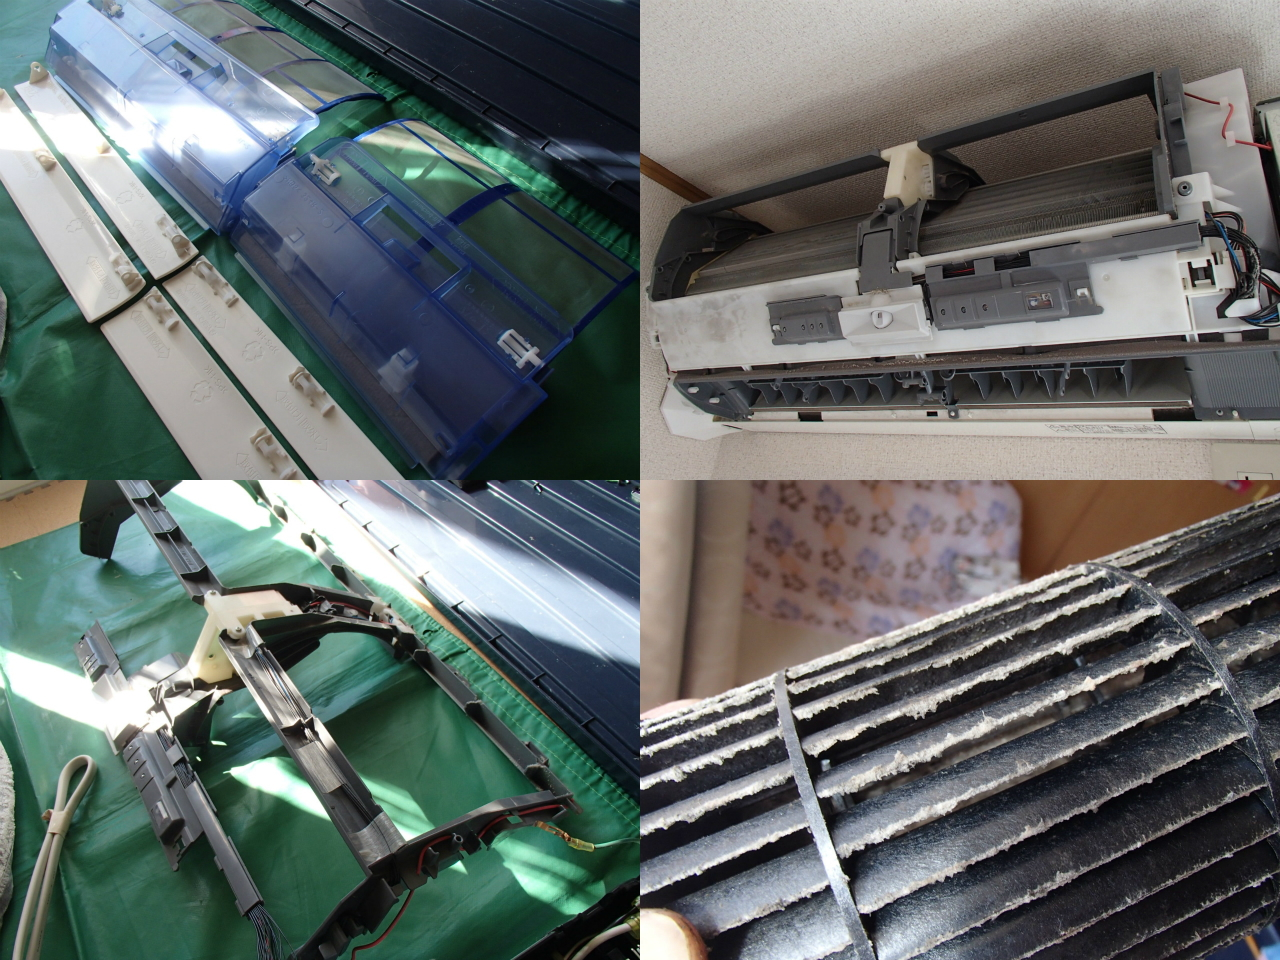 http://ajras.net/images/121012-aircon2.jpg